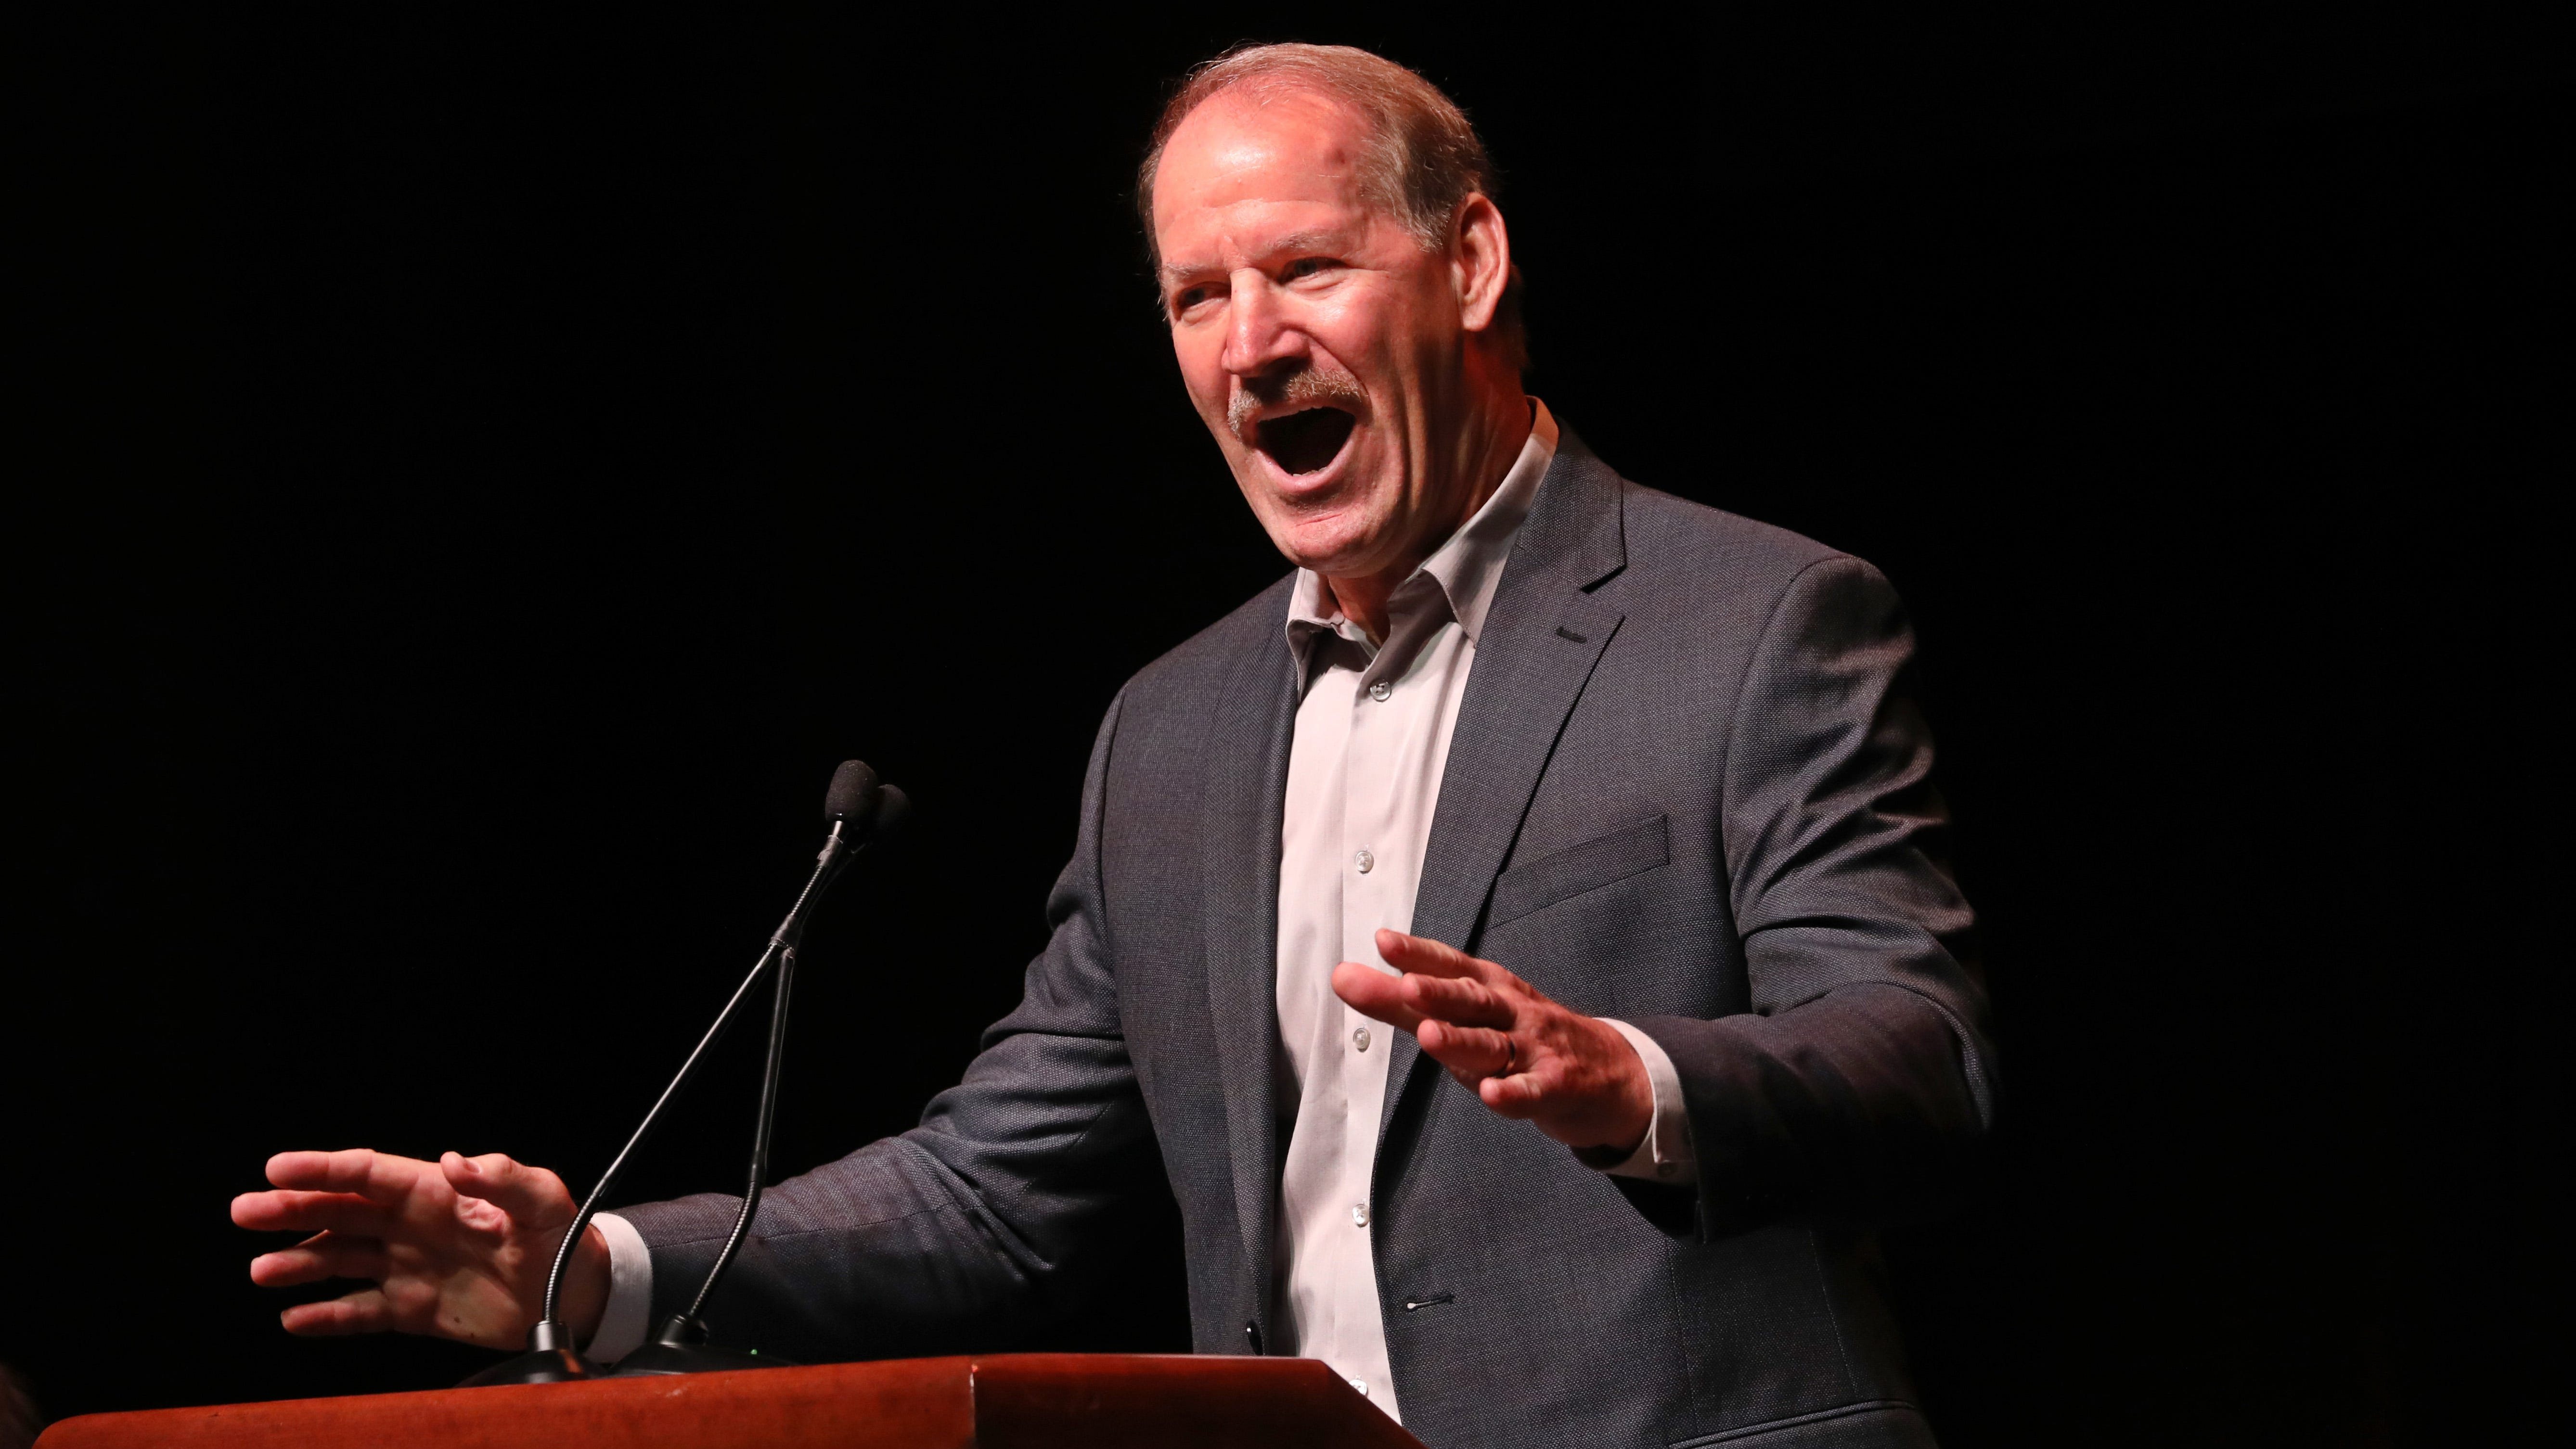 Bill Cowher provides hard-hitting perspective at Compeer luncheon